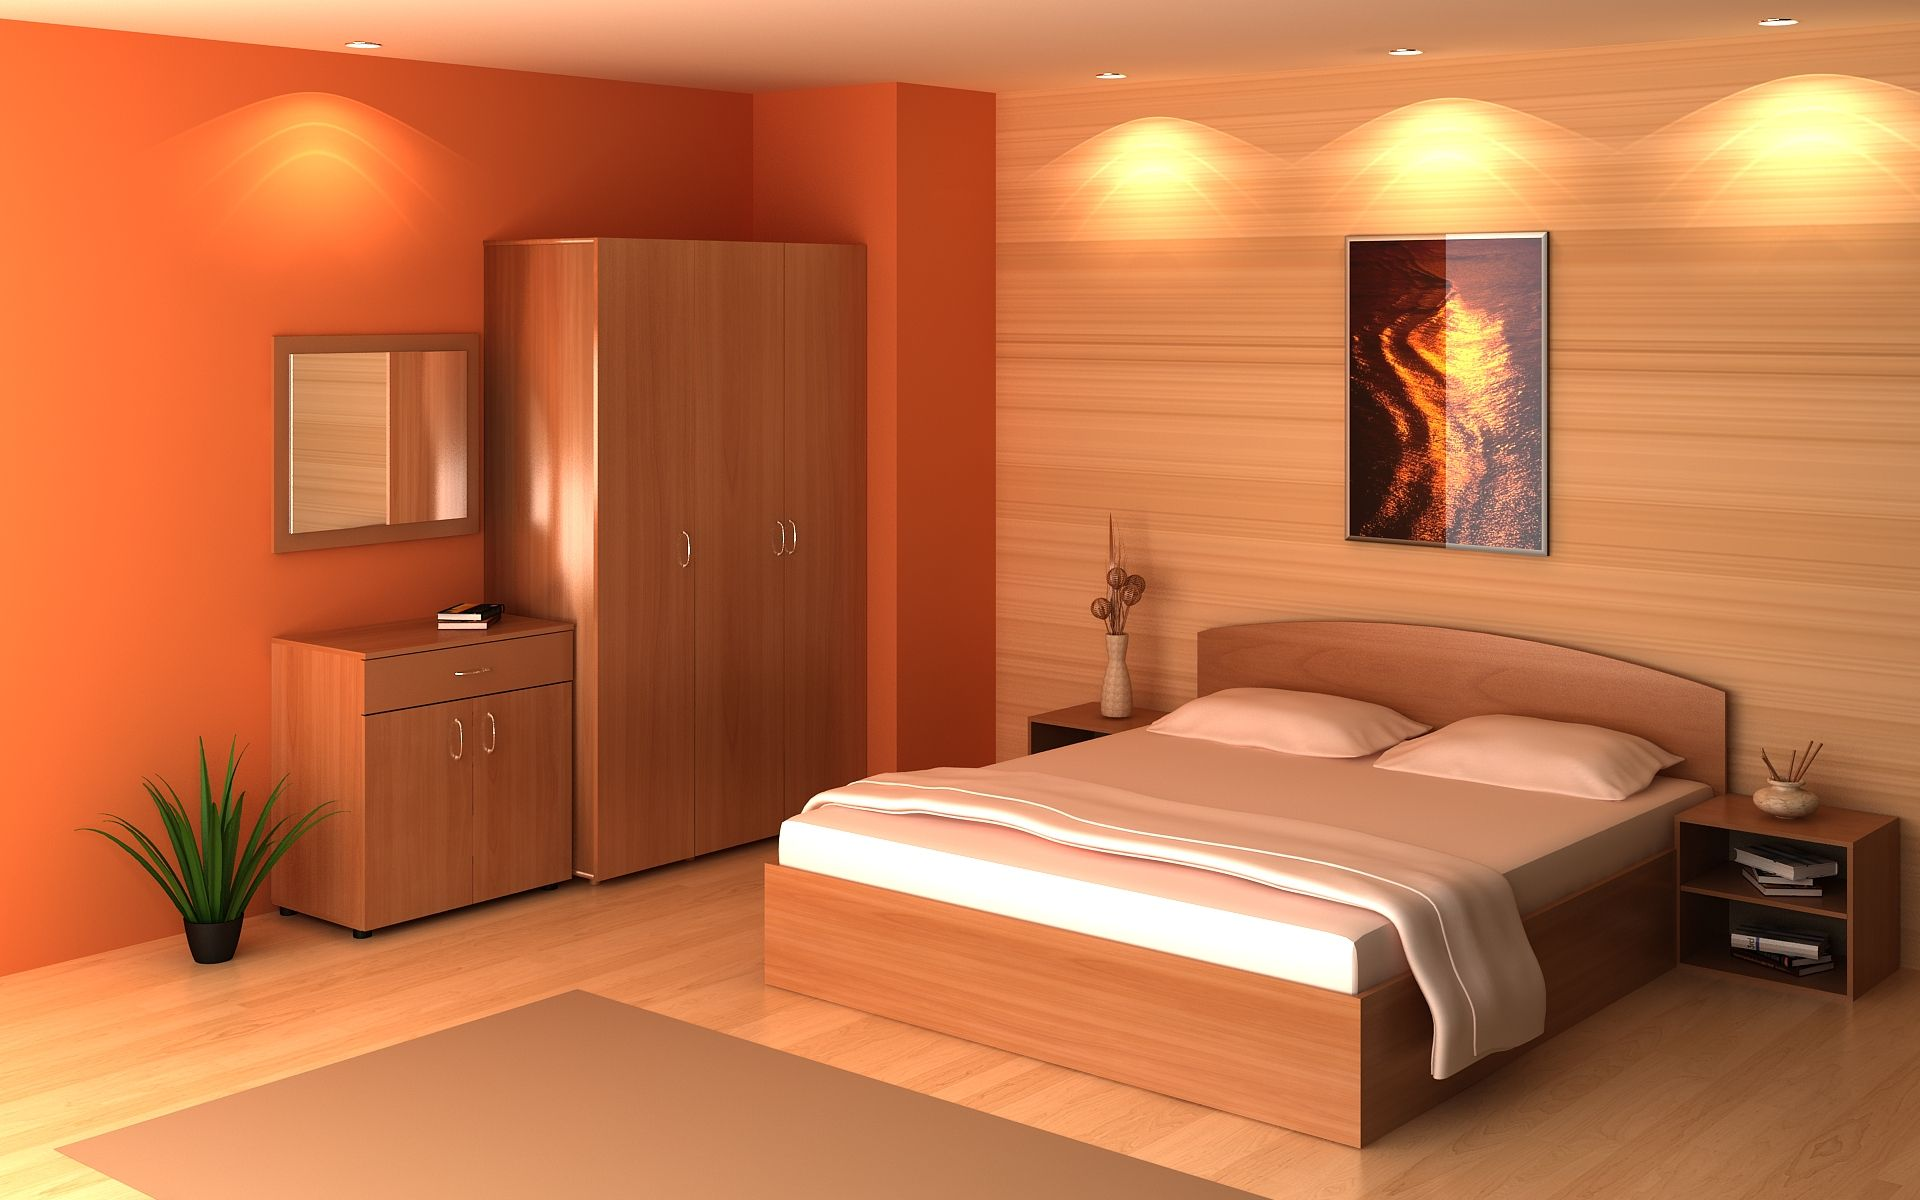 20 Master Modern Bedrooms Selections 2015 Decor Woo